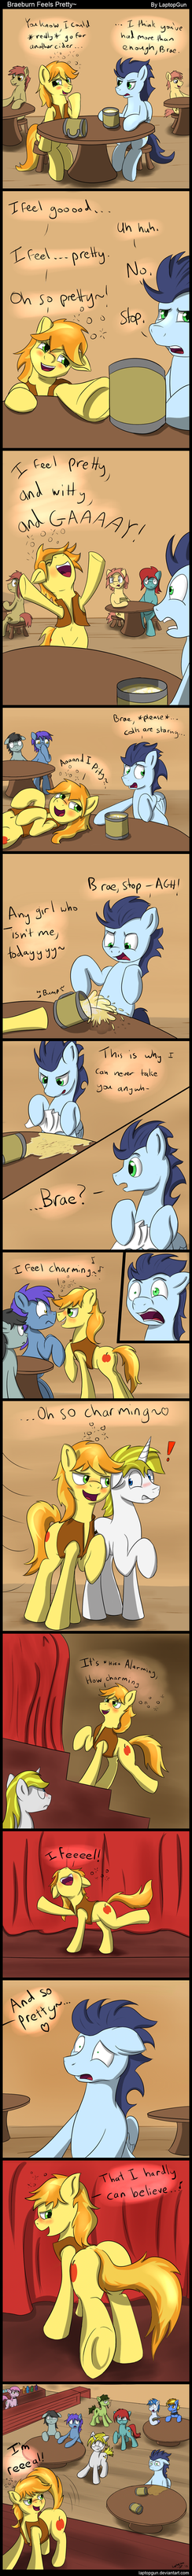 Braeburn Feels Pretty [Comic] by LaptopGun